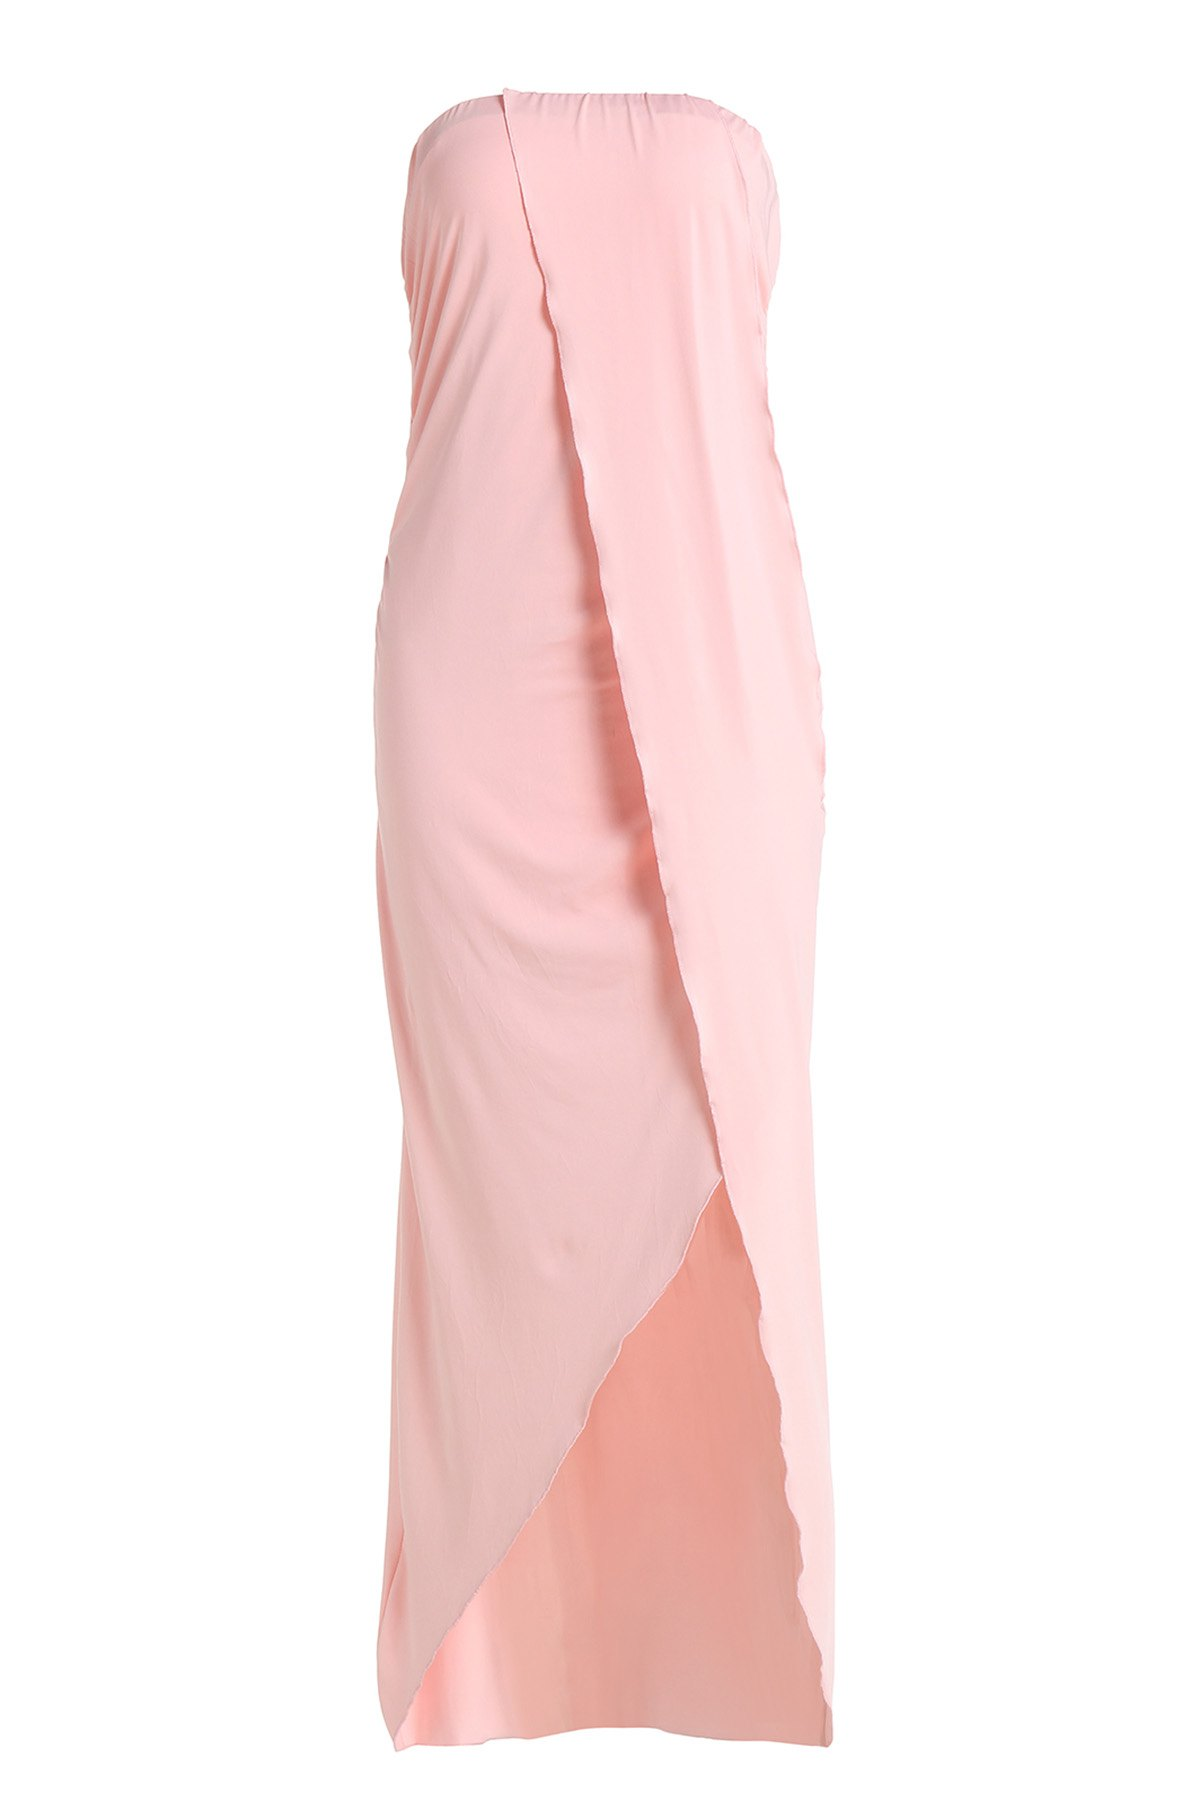 Sexy Strapless Sleeveless Solid Color Asymmetrical Women's Dress - PINK S